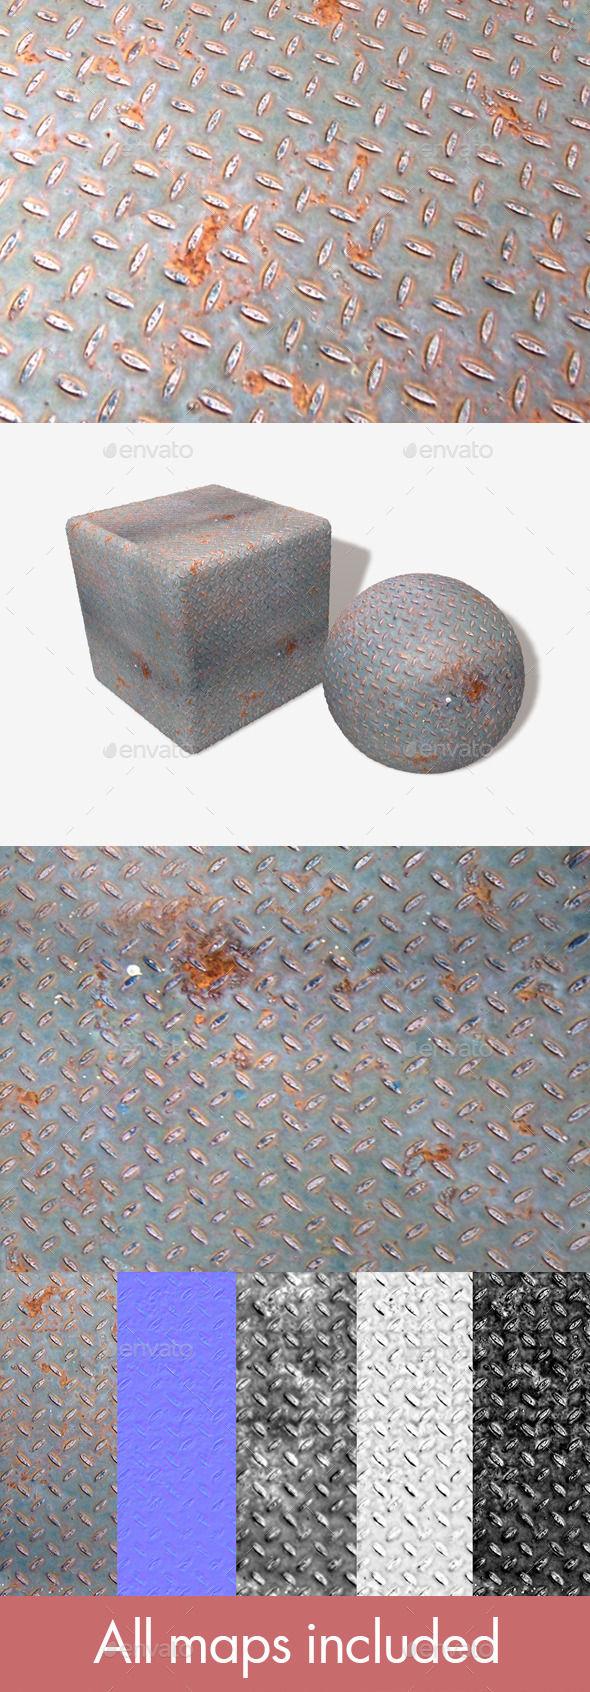 3DOcean Rusty Metal Grid Seamless Texture 11582019